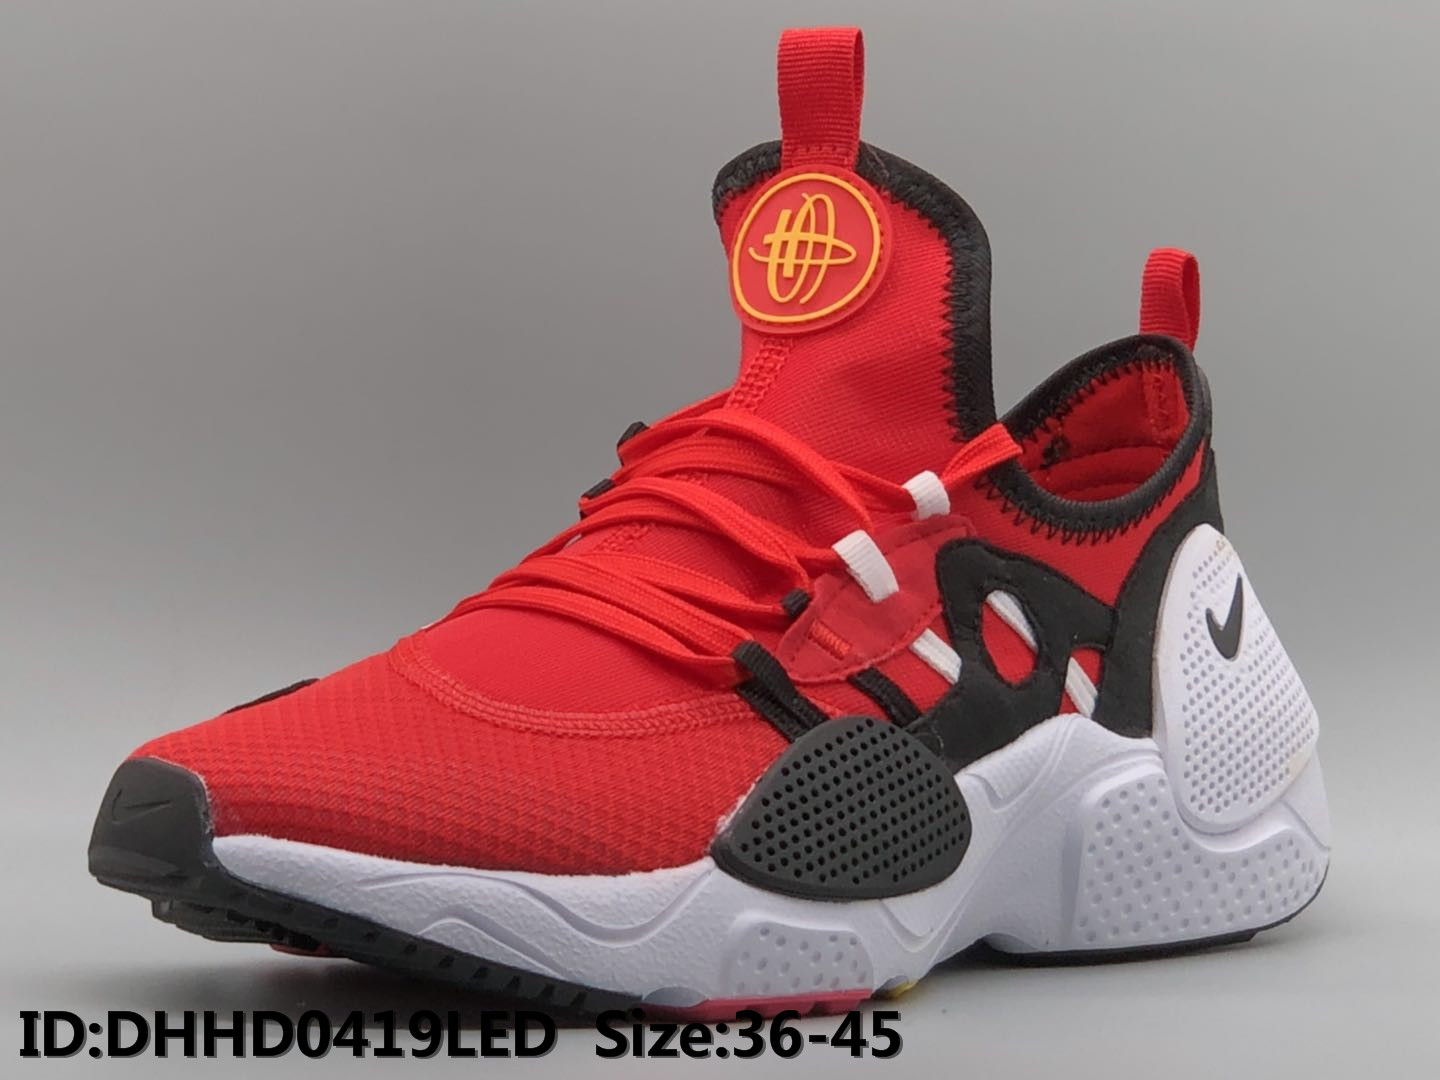 Nike Air Huarache 7 Reddish Orange Black White Shoes